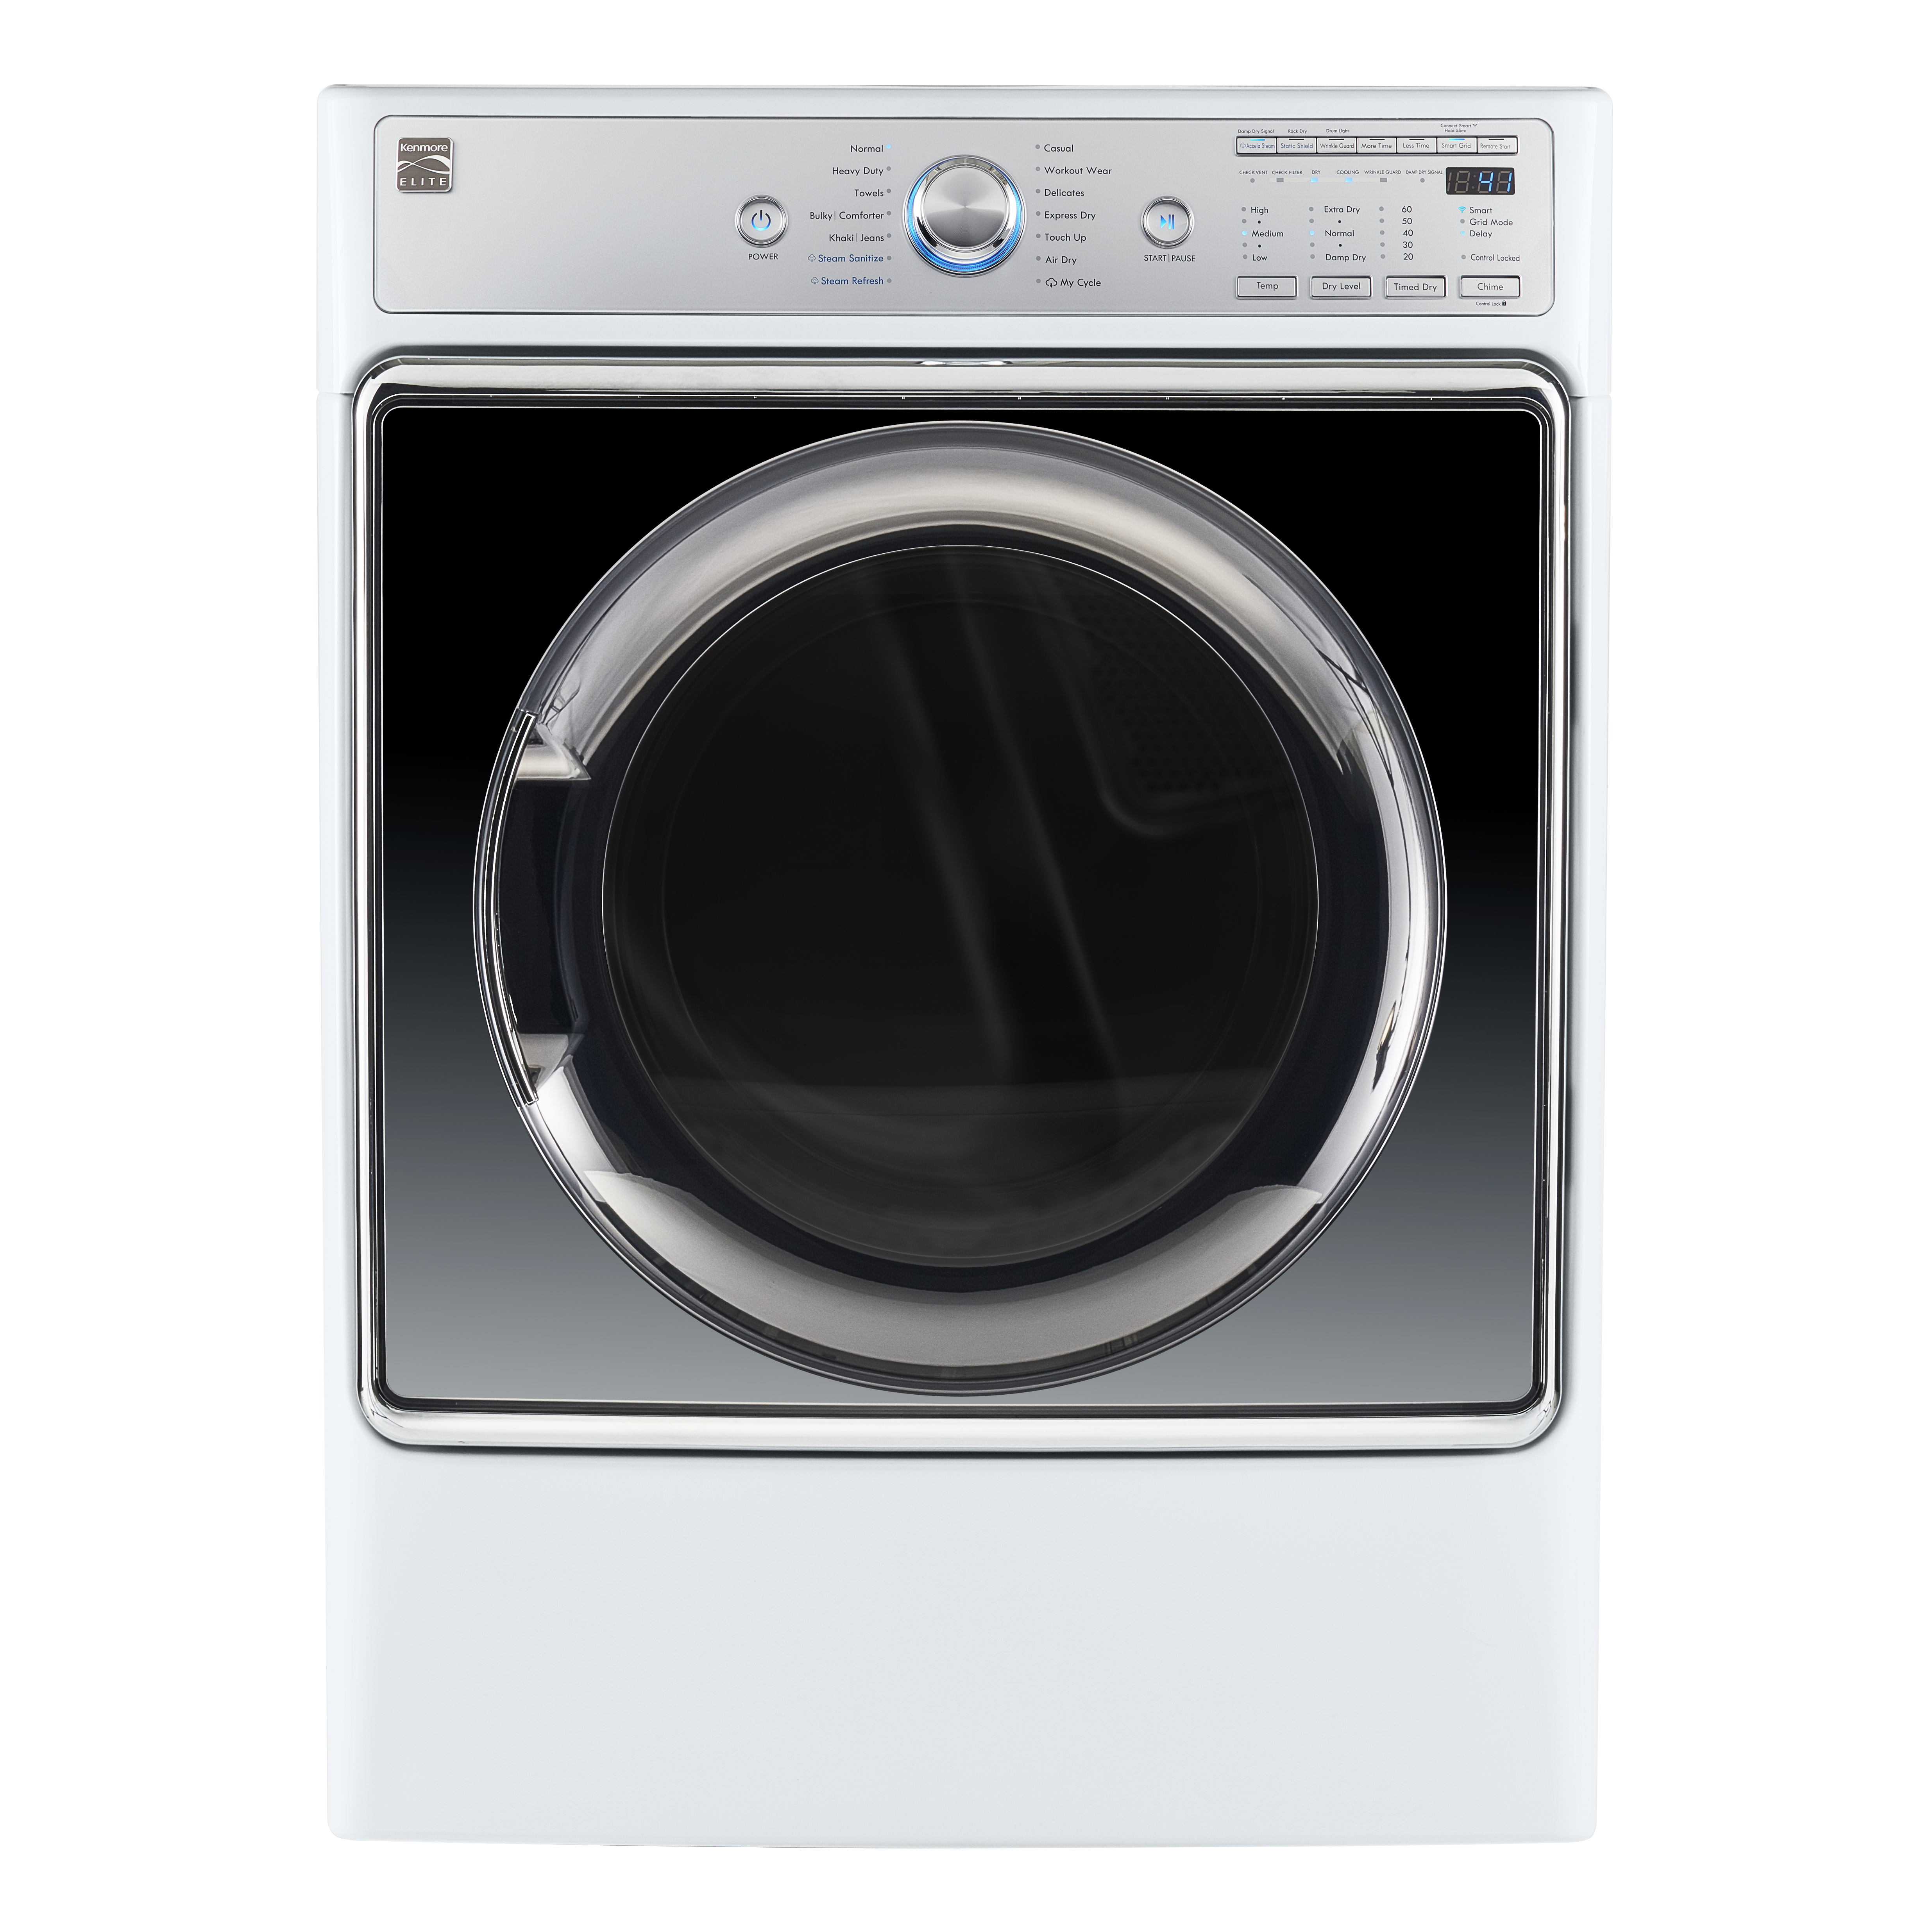 small resolution of kenmore elite 91982 9 0 cu ft smart gas dryer w accela steam gas dryer i d be happy for any sears gas dryer diagram just to